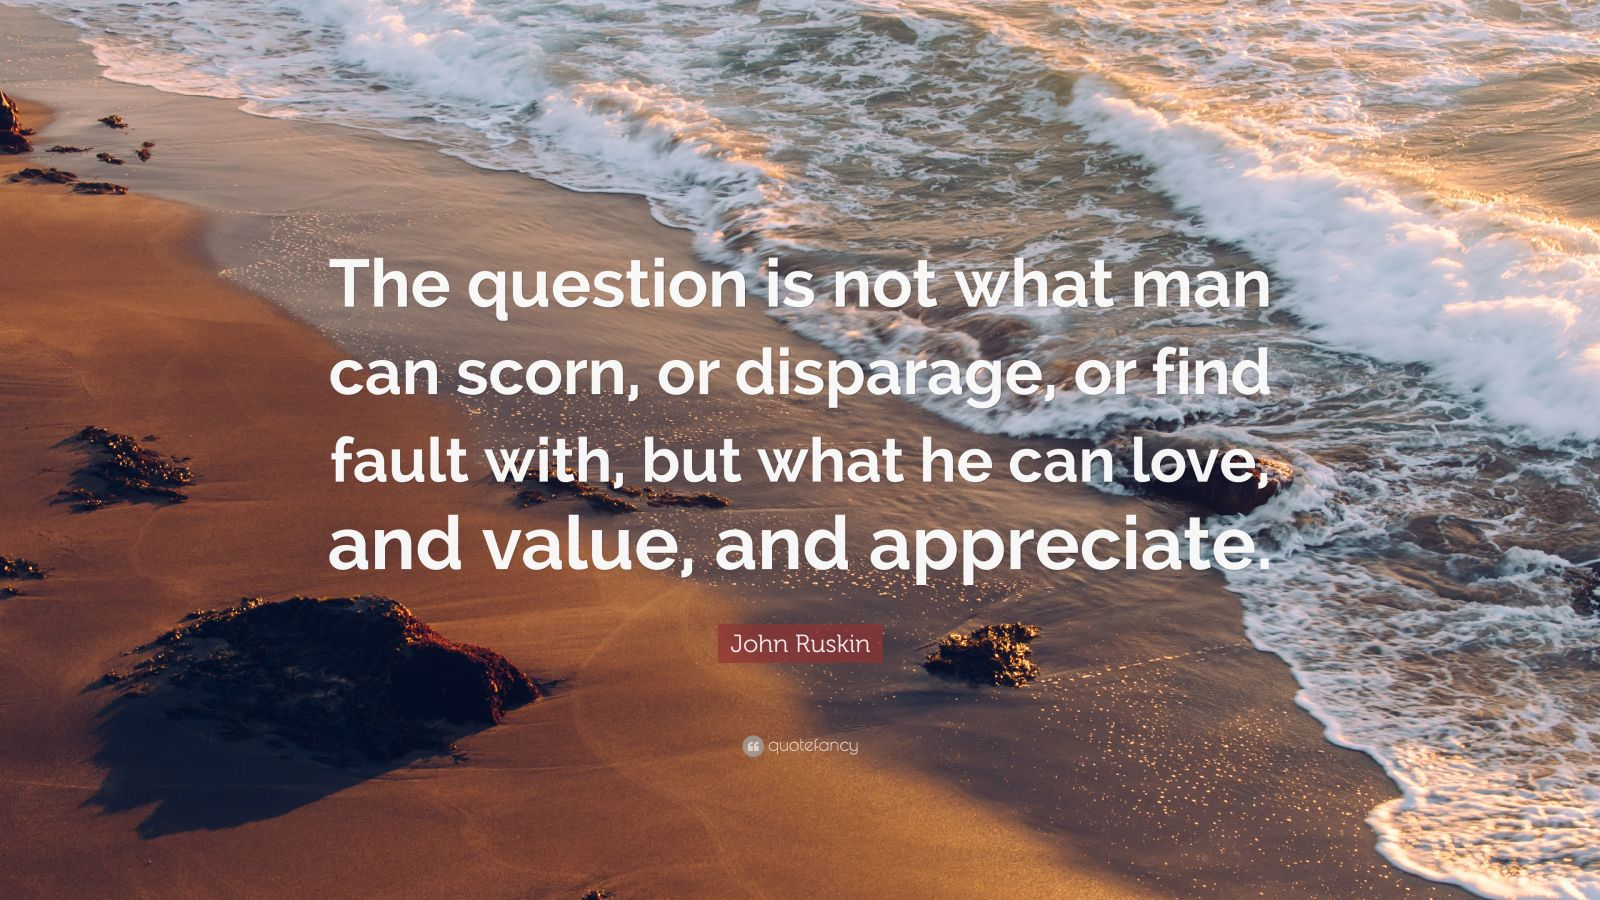 """John Ruskin Quote: """"The question is not what man can scorn, or disparage, or find fault with, but what he can love, and value, and appreciate."""""""